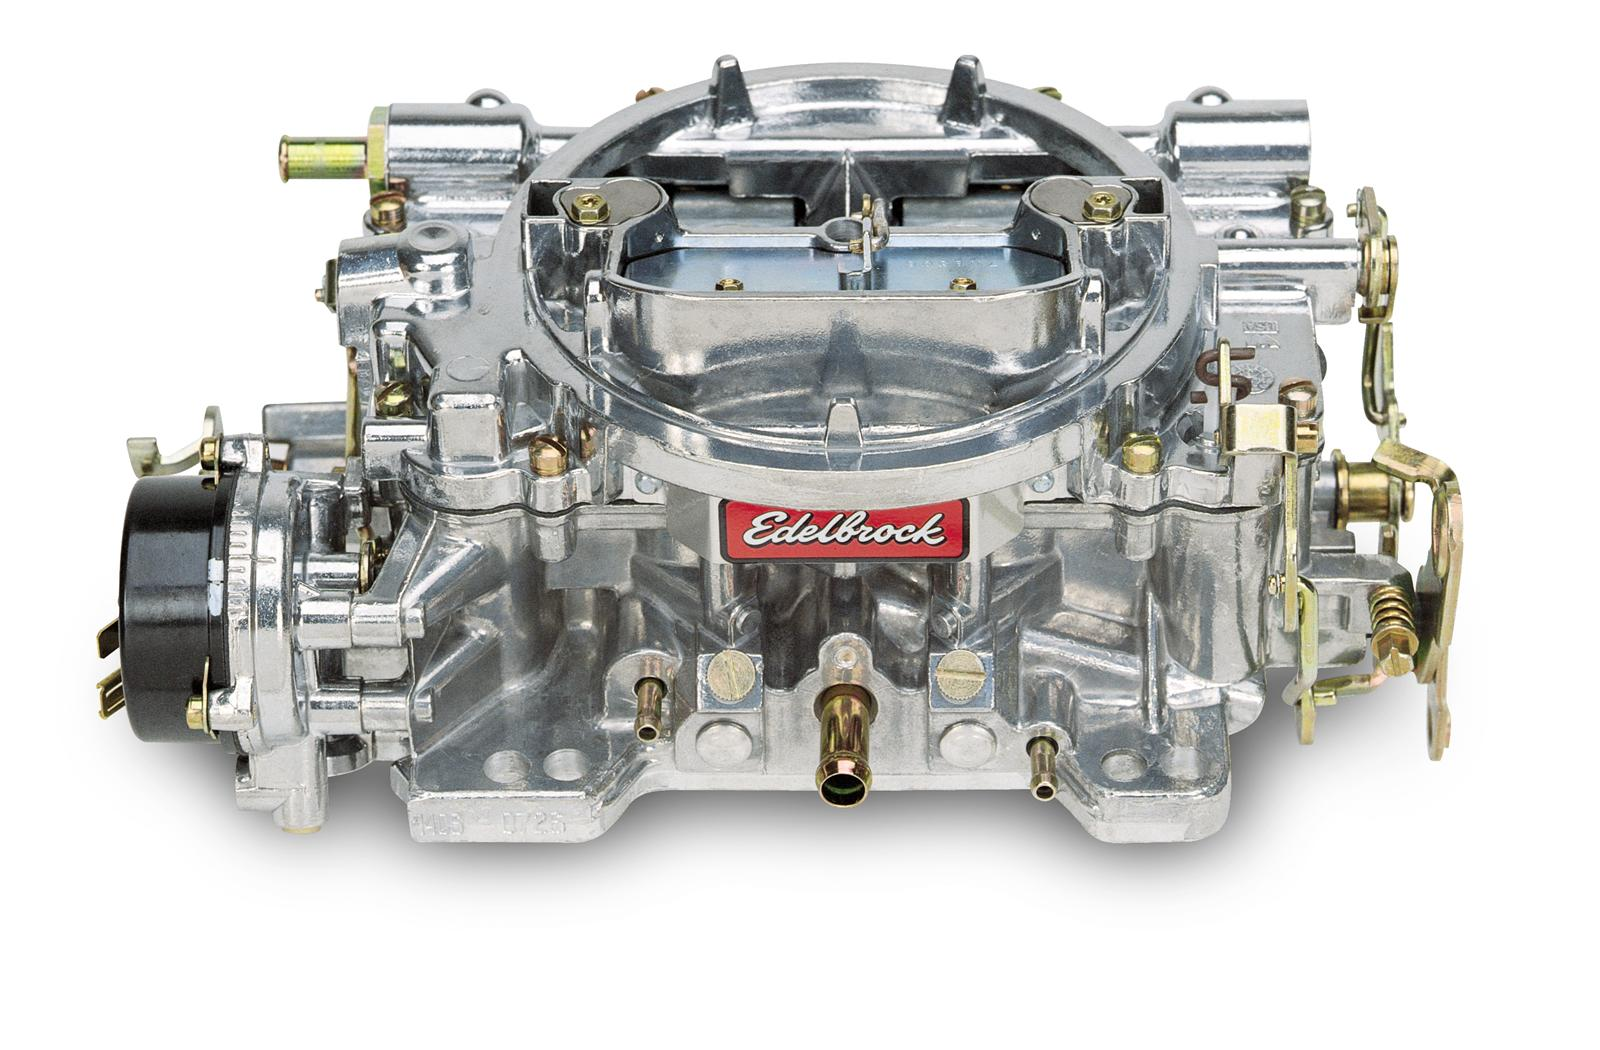 hight resolution of edelbrock performer carburetors 1406 free shipping on orders over 99 at summit racing